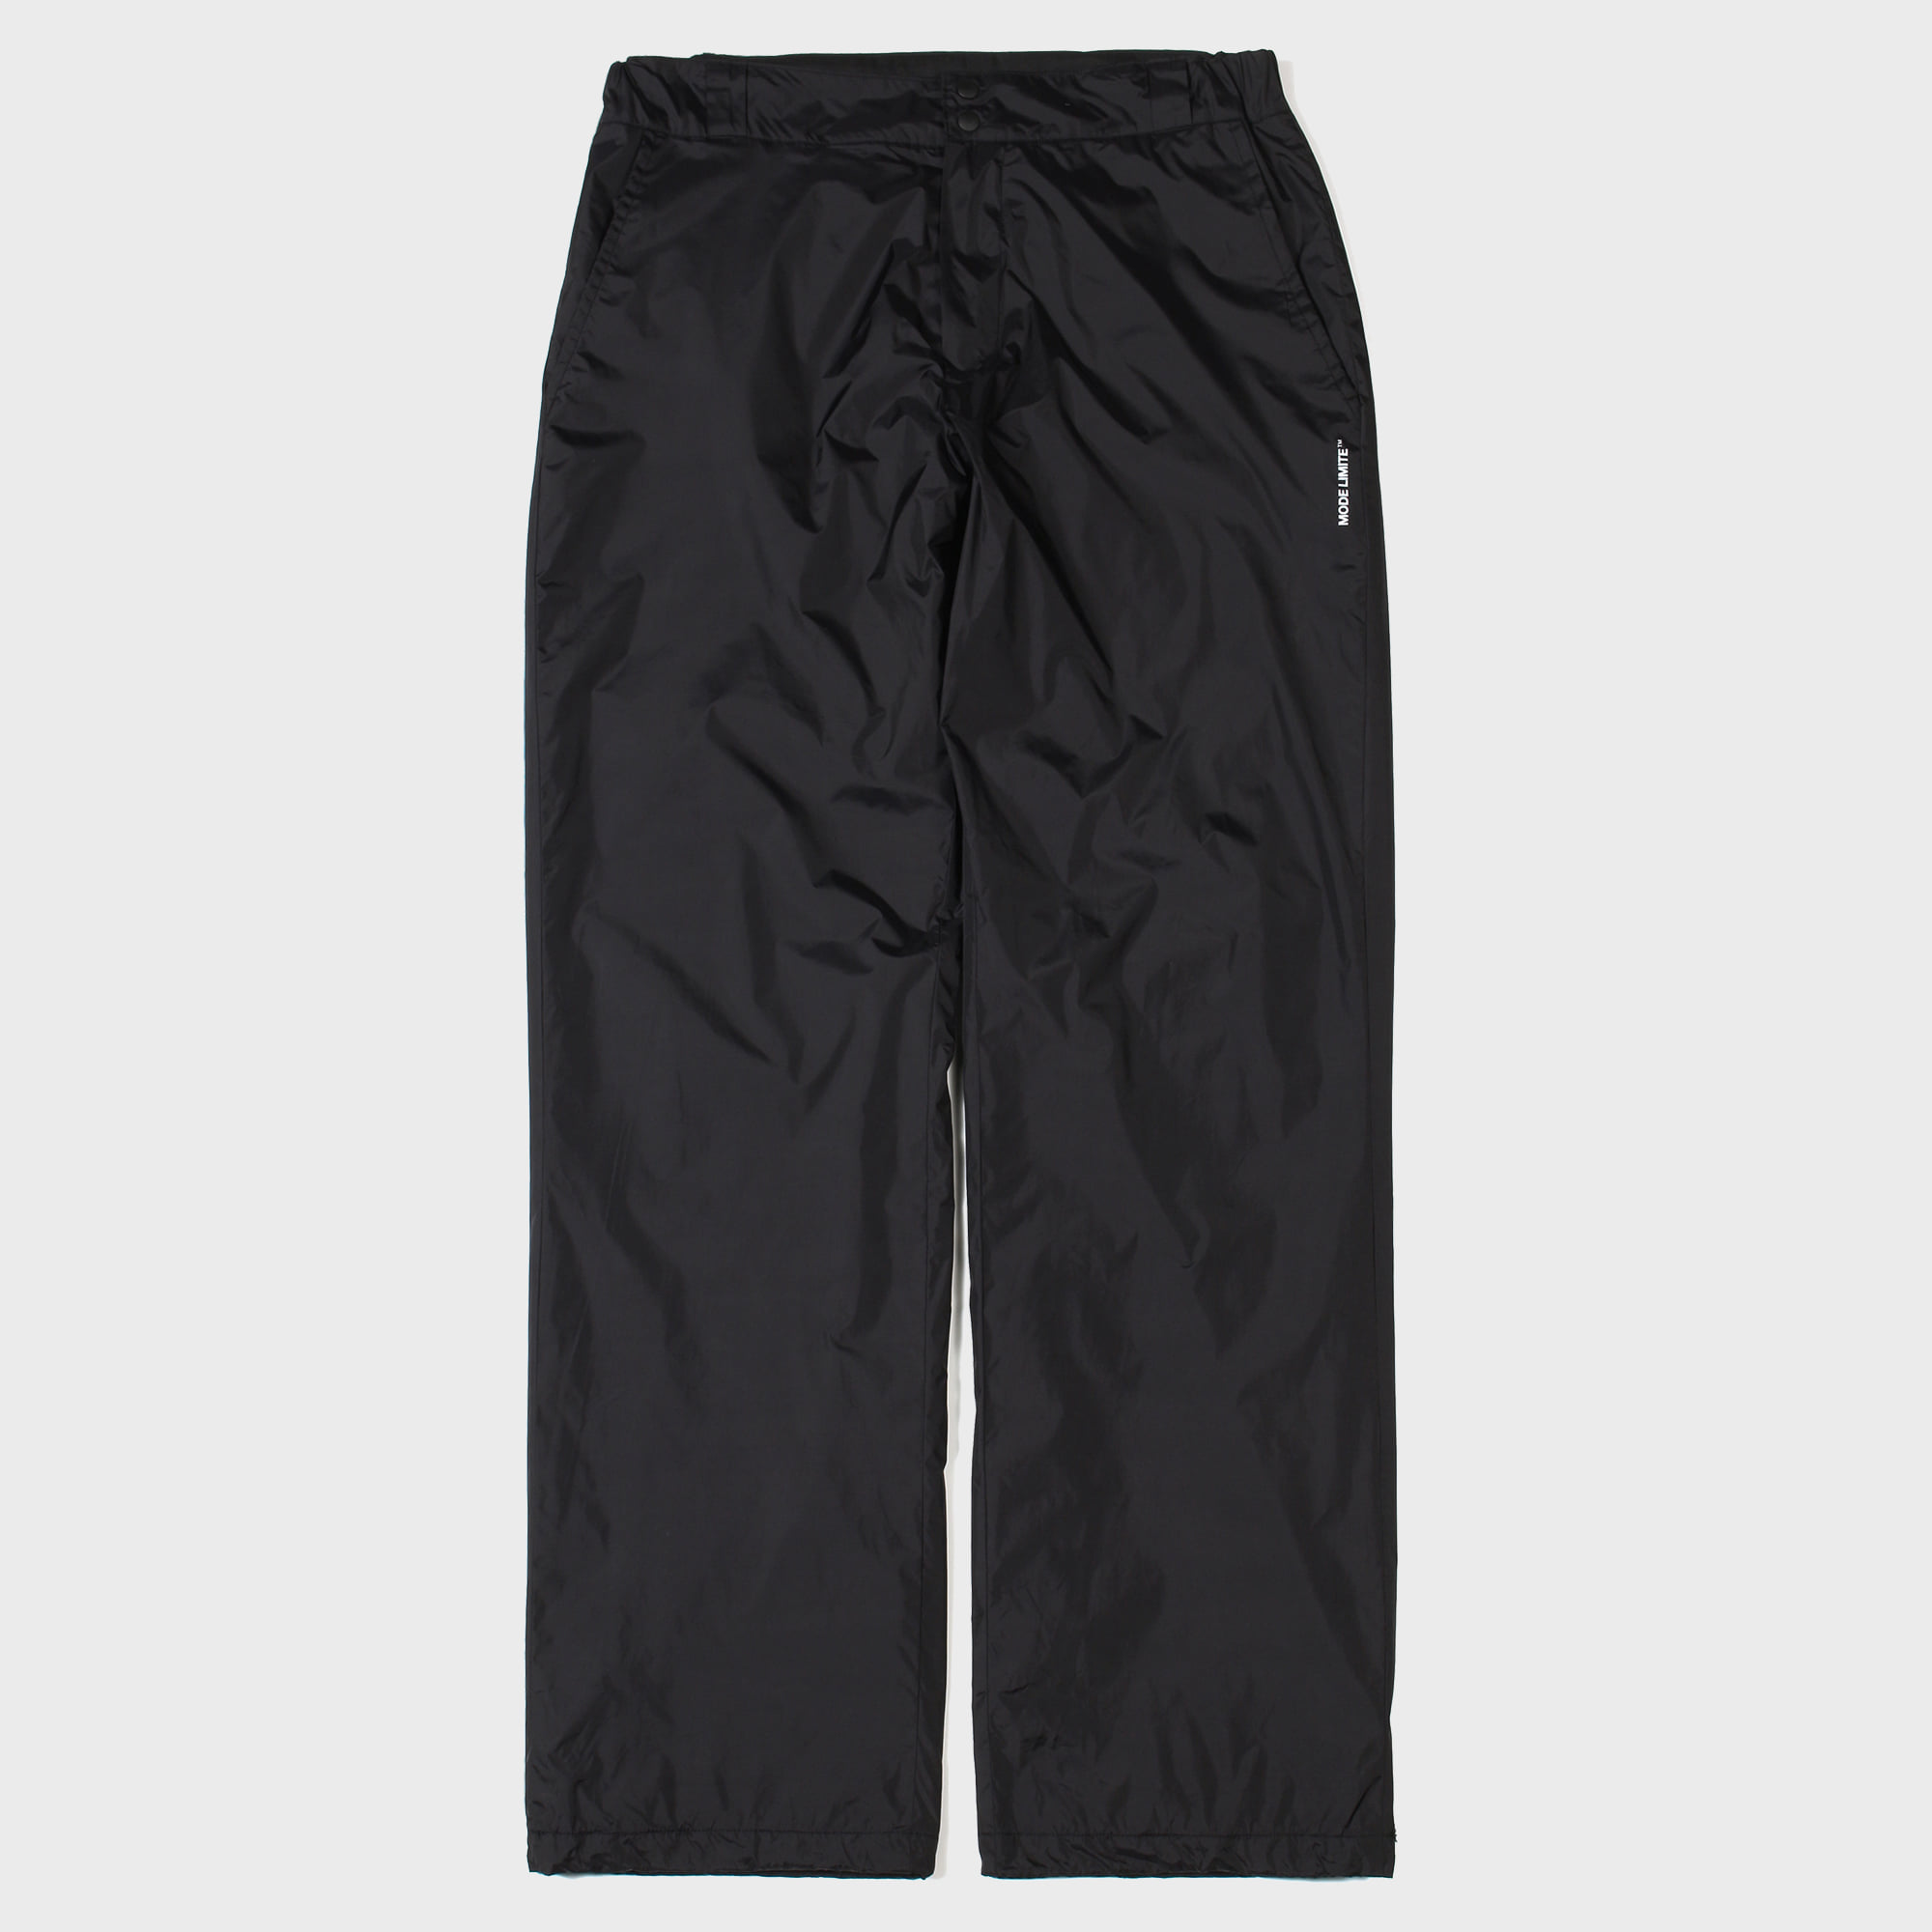 Nylon String Pants Black